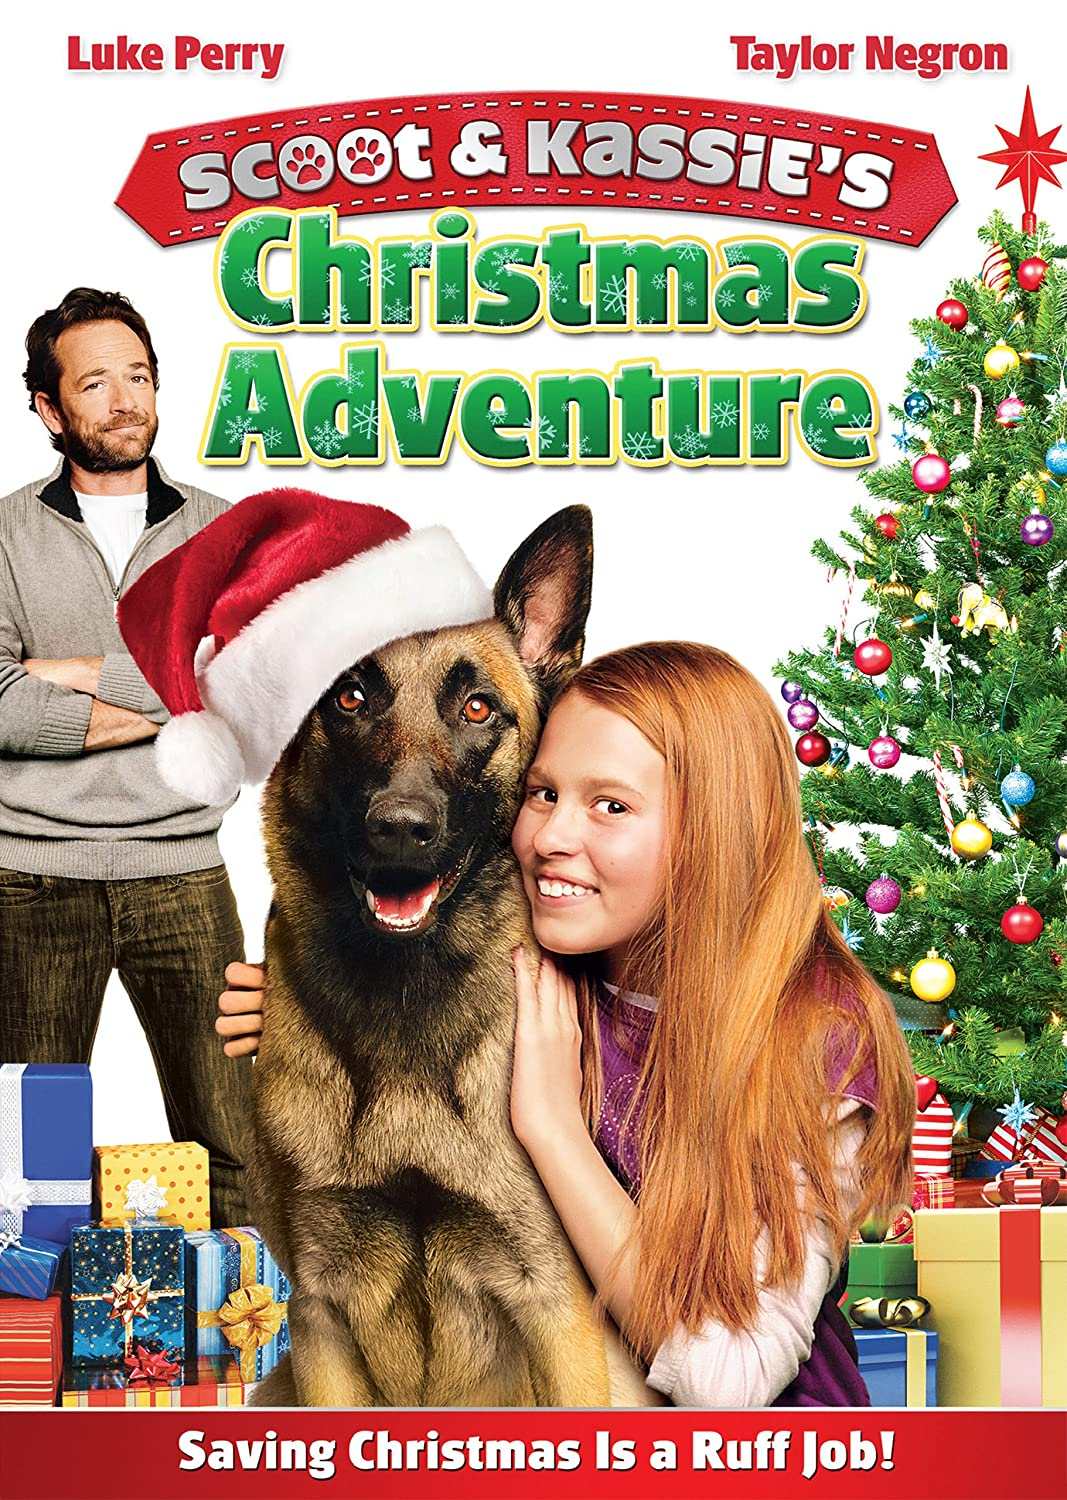 Amazon.com: Scoot and Kassie's Christmas Adventure: Luke Perry ...